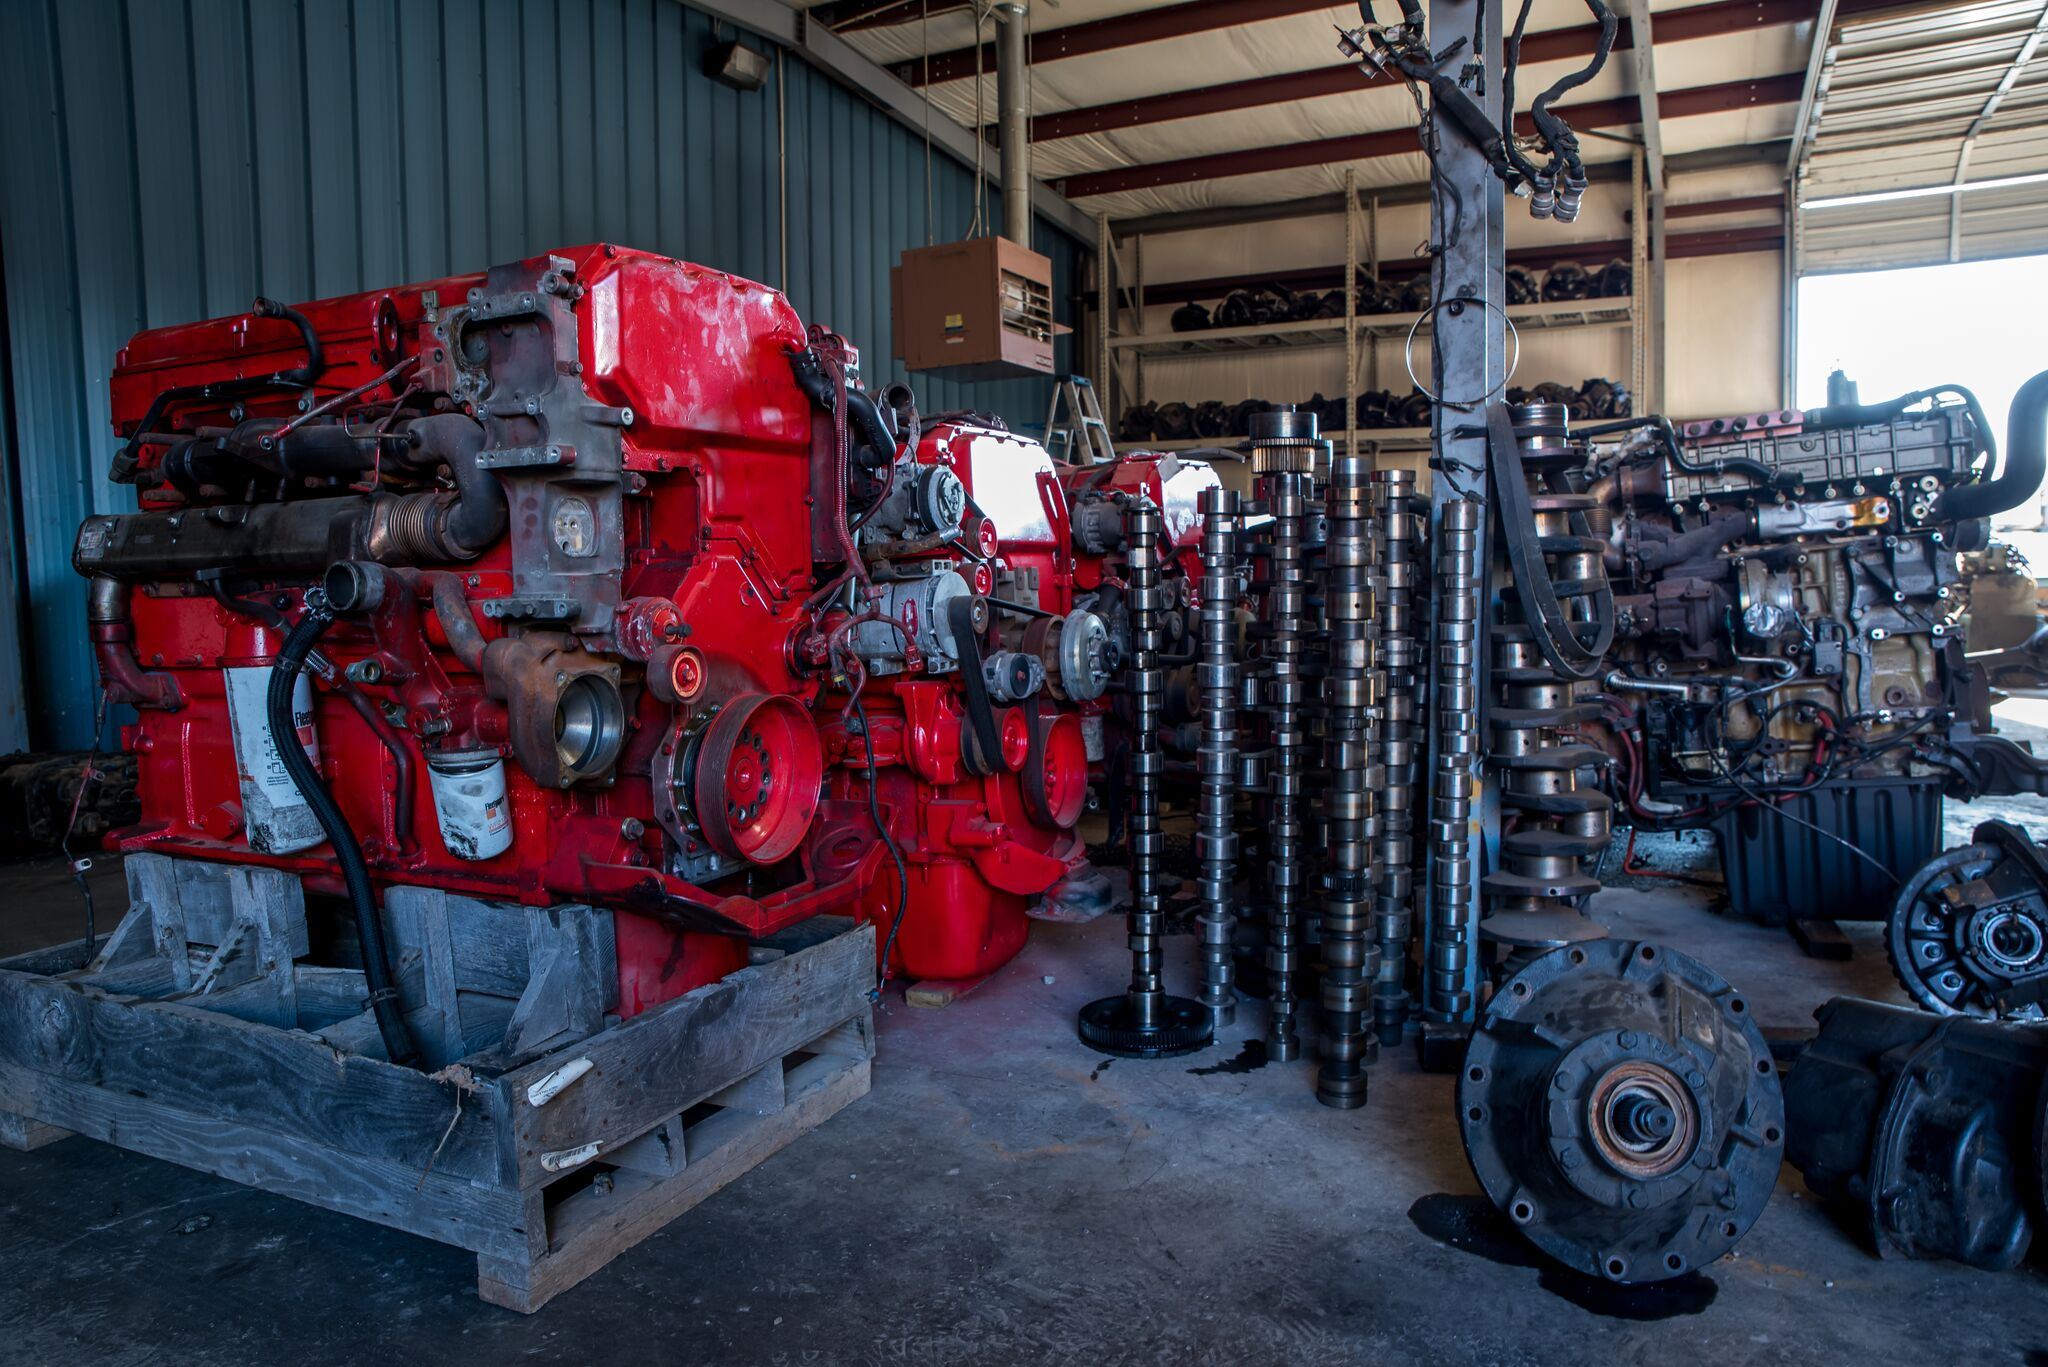 Knoxville Truck Parts and Semi Truck Engines